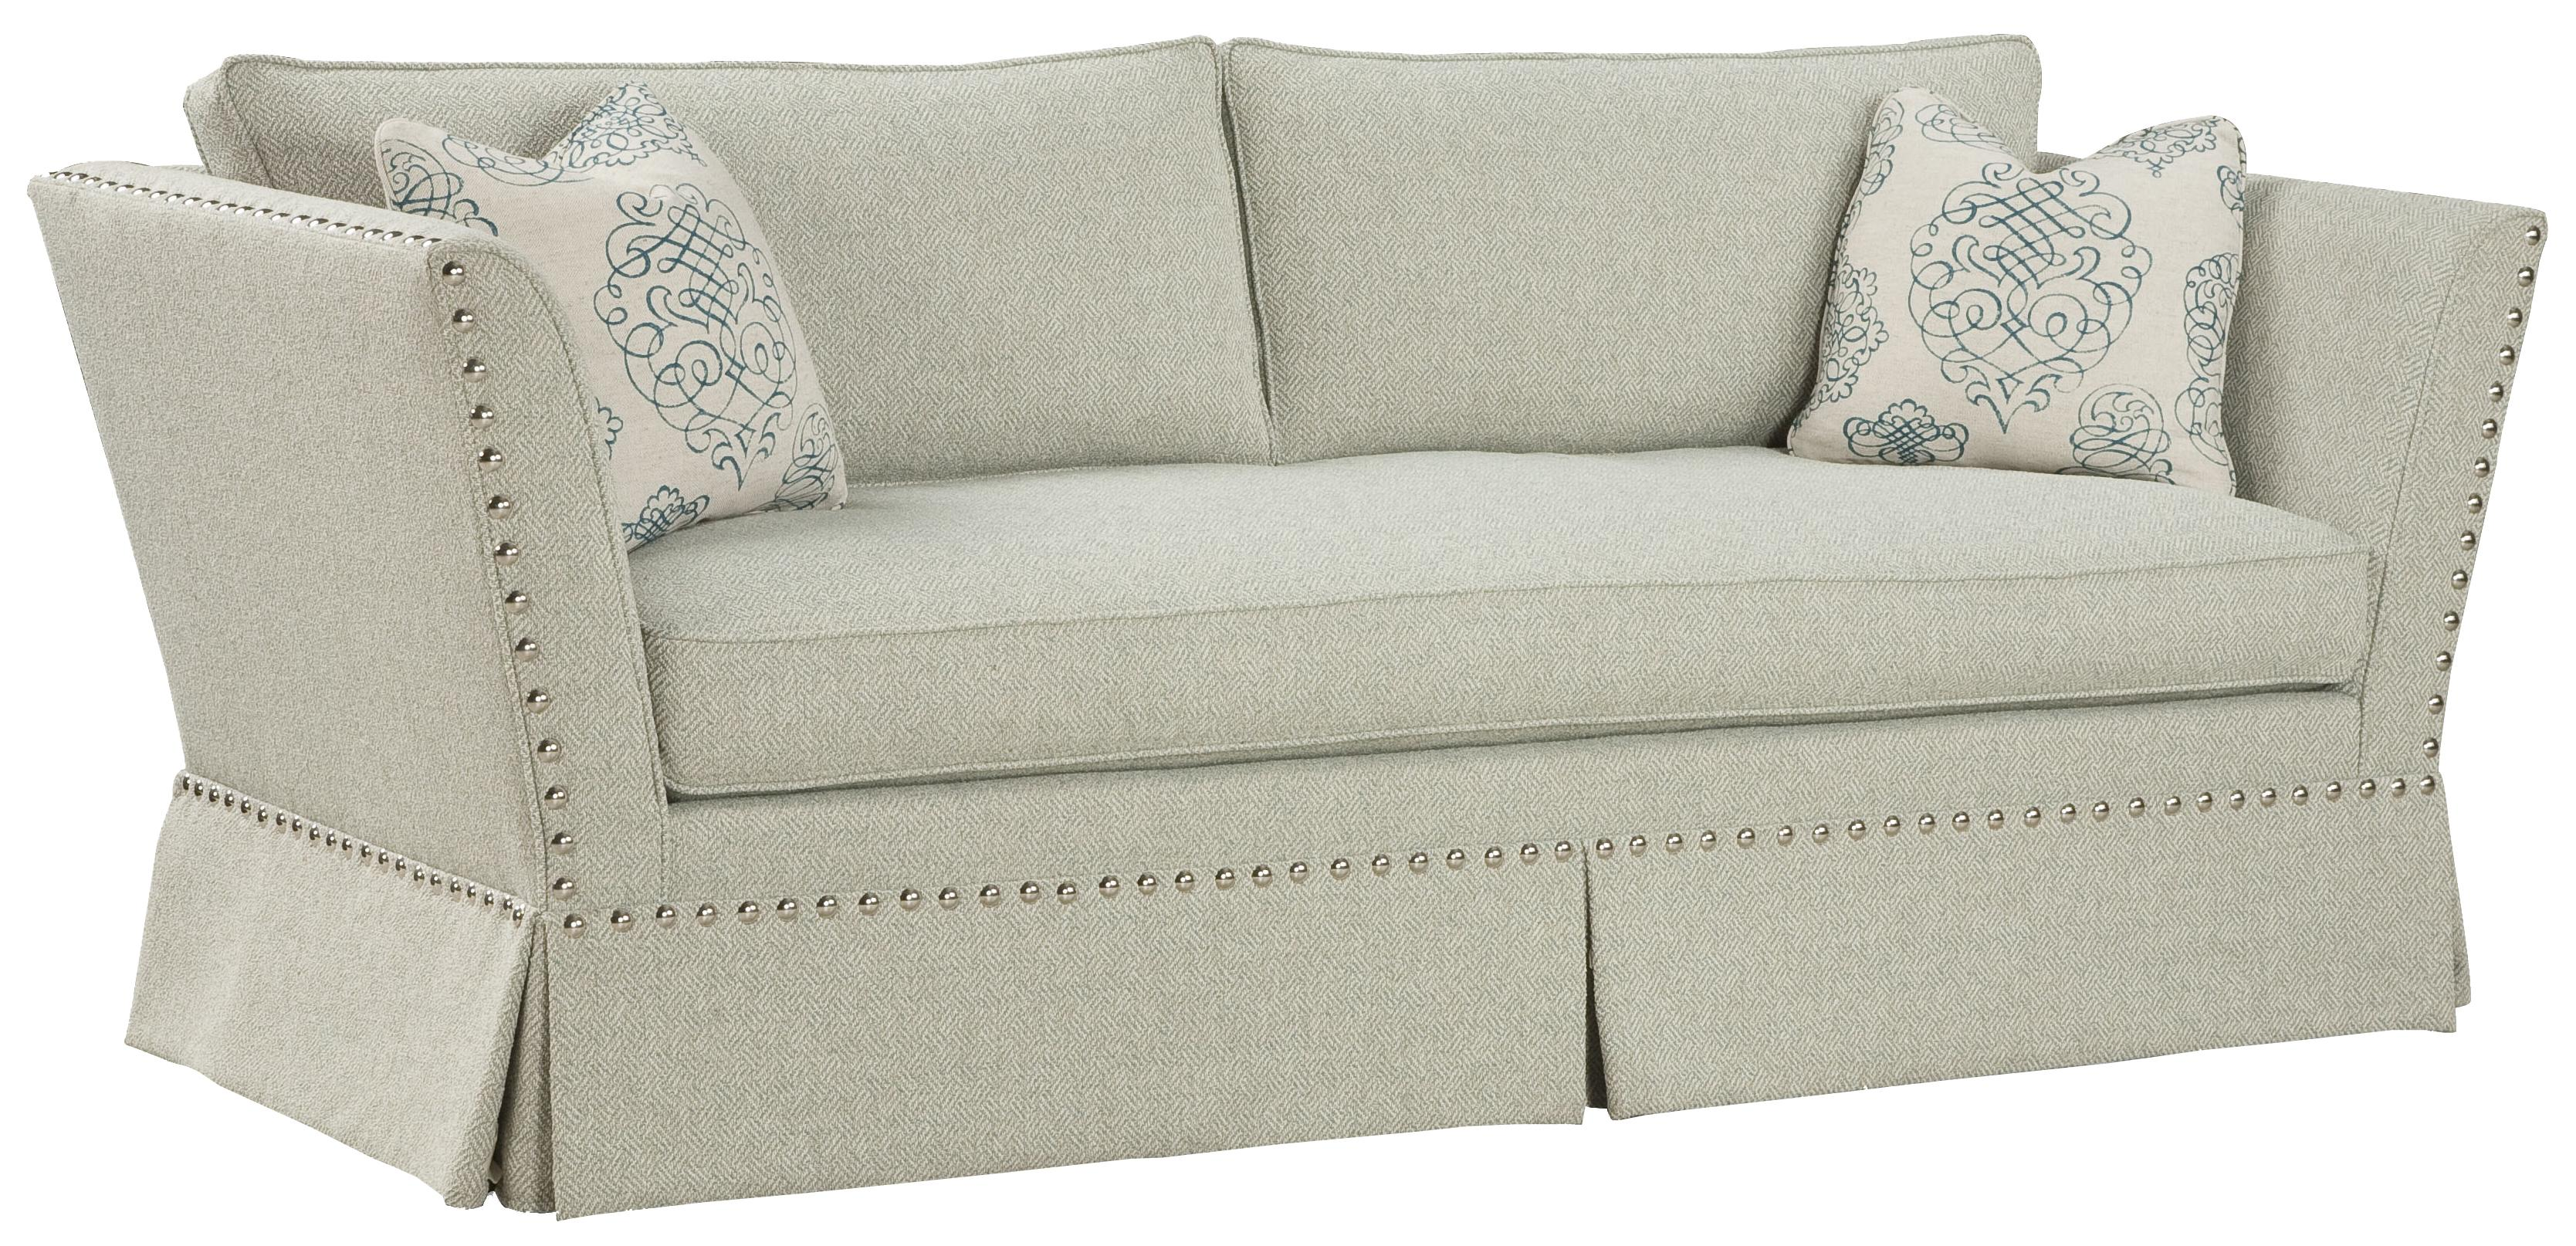 accent sofa scs girl fairfield accents unique in flared arm